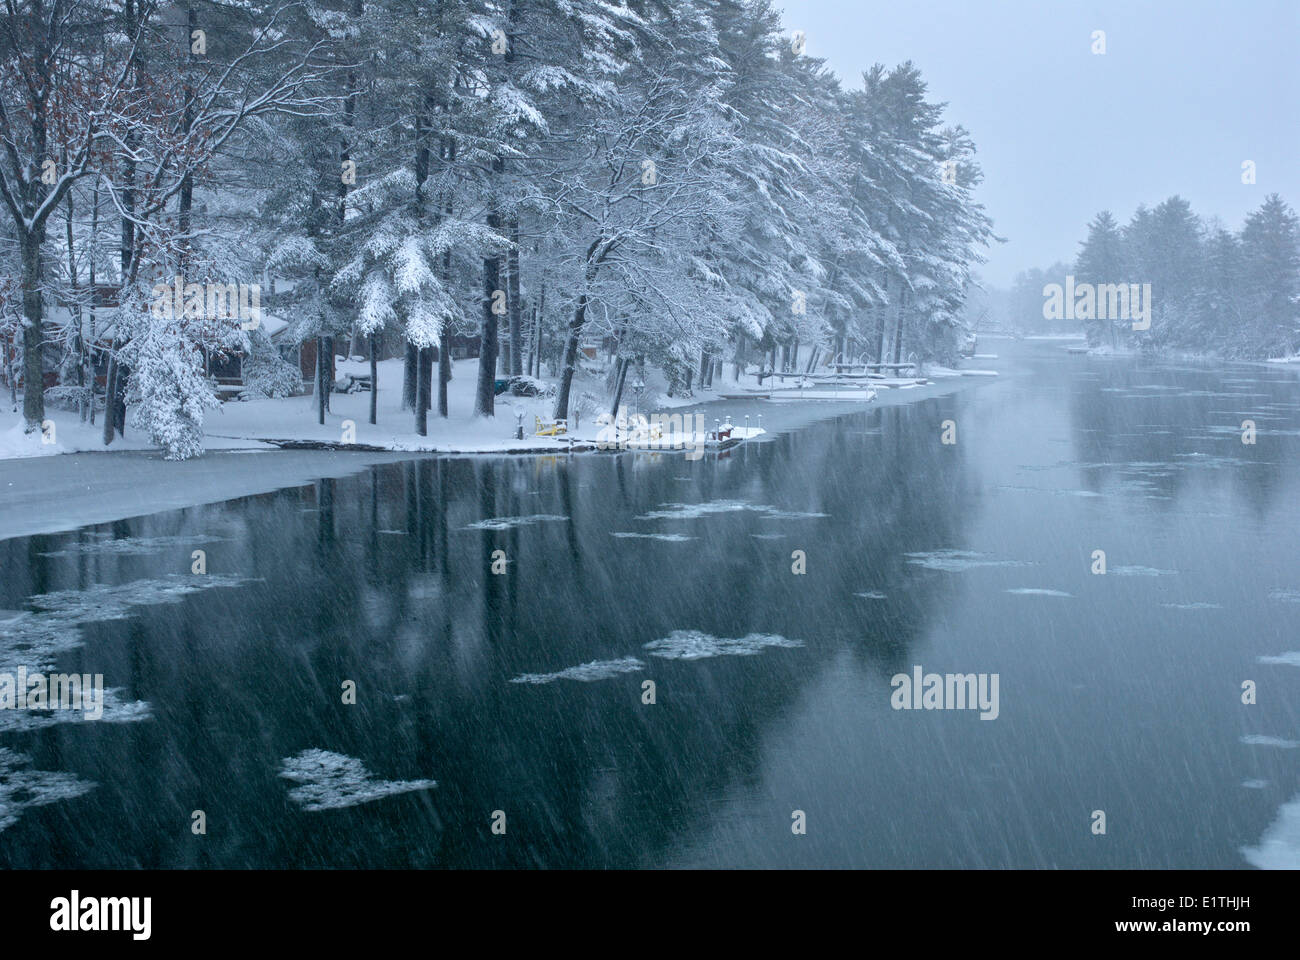 Snow Squall in Cottage country on the Severn river, Muskoka Ontario - Stock Image